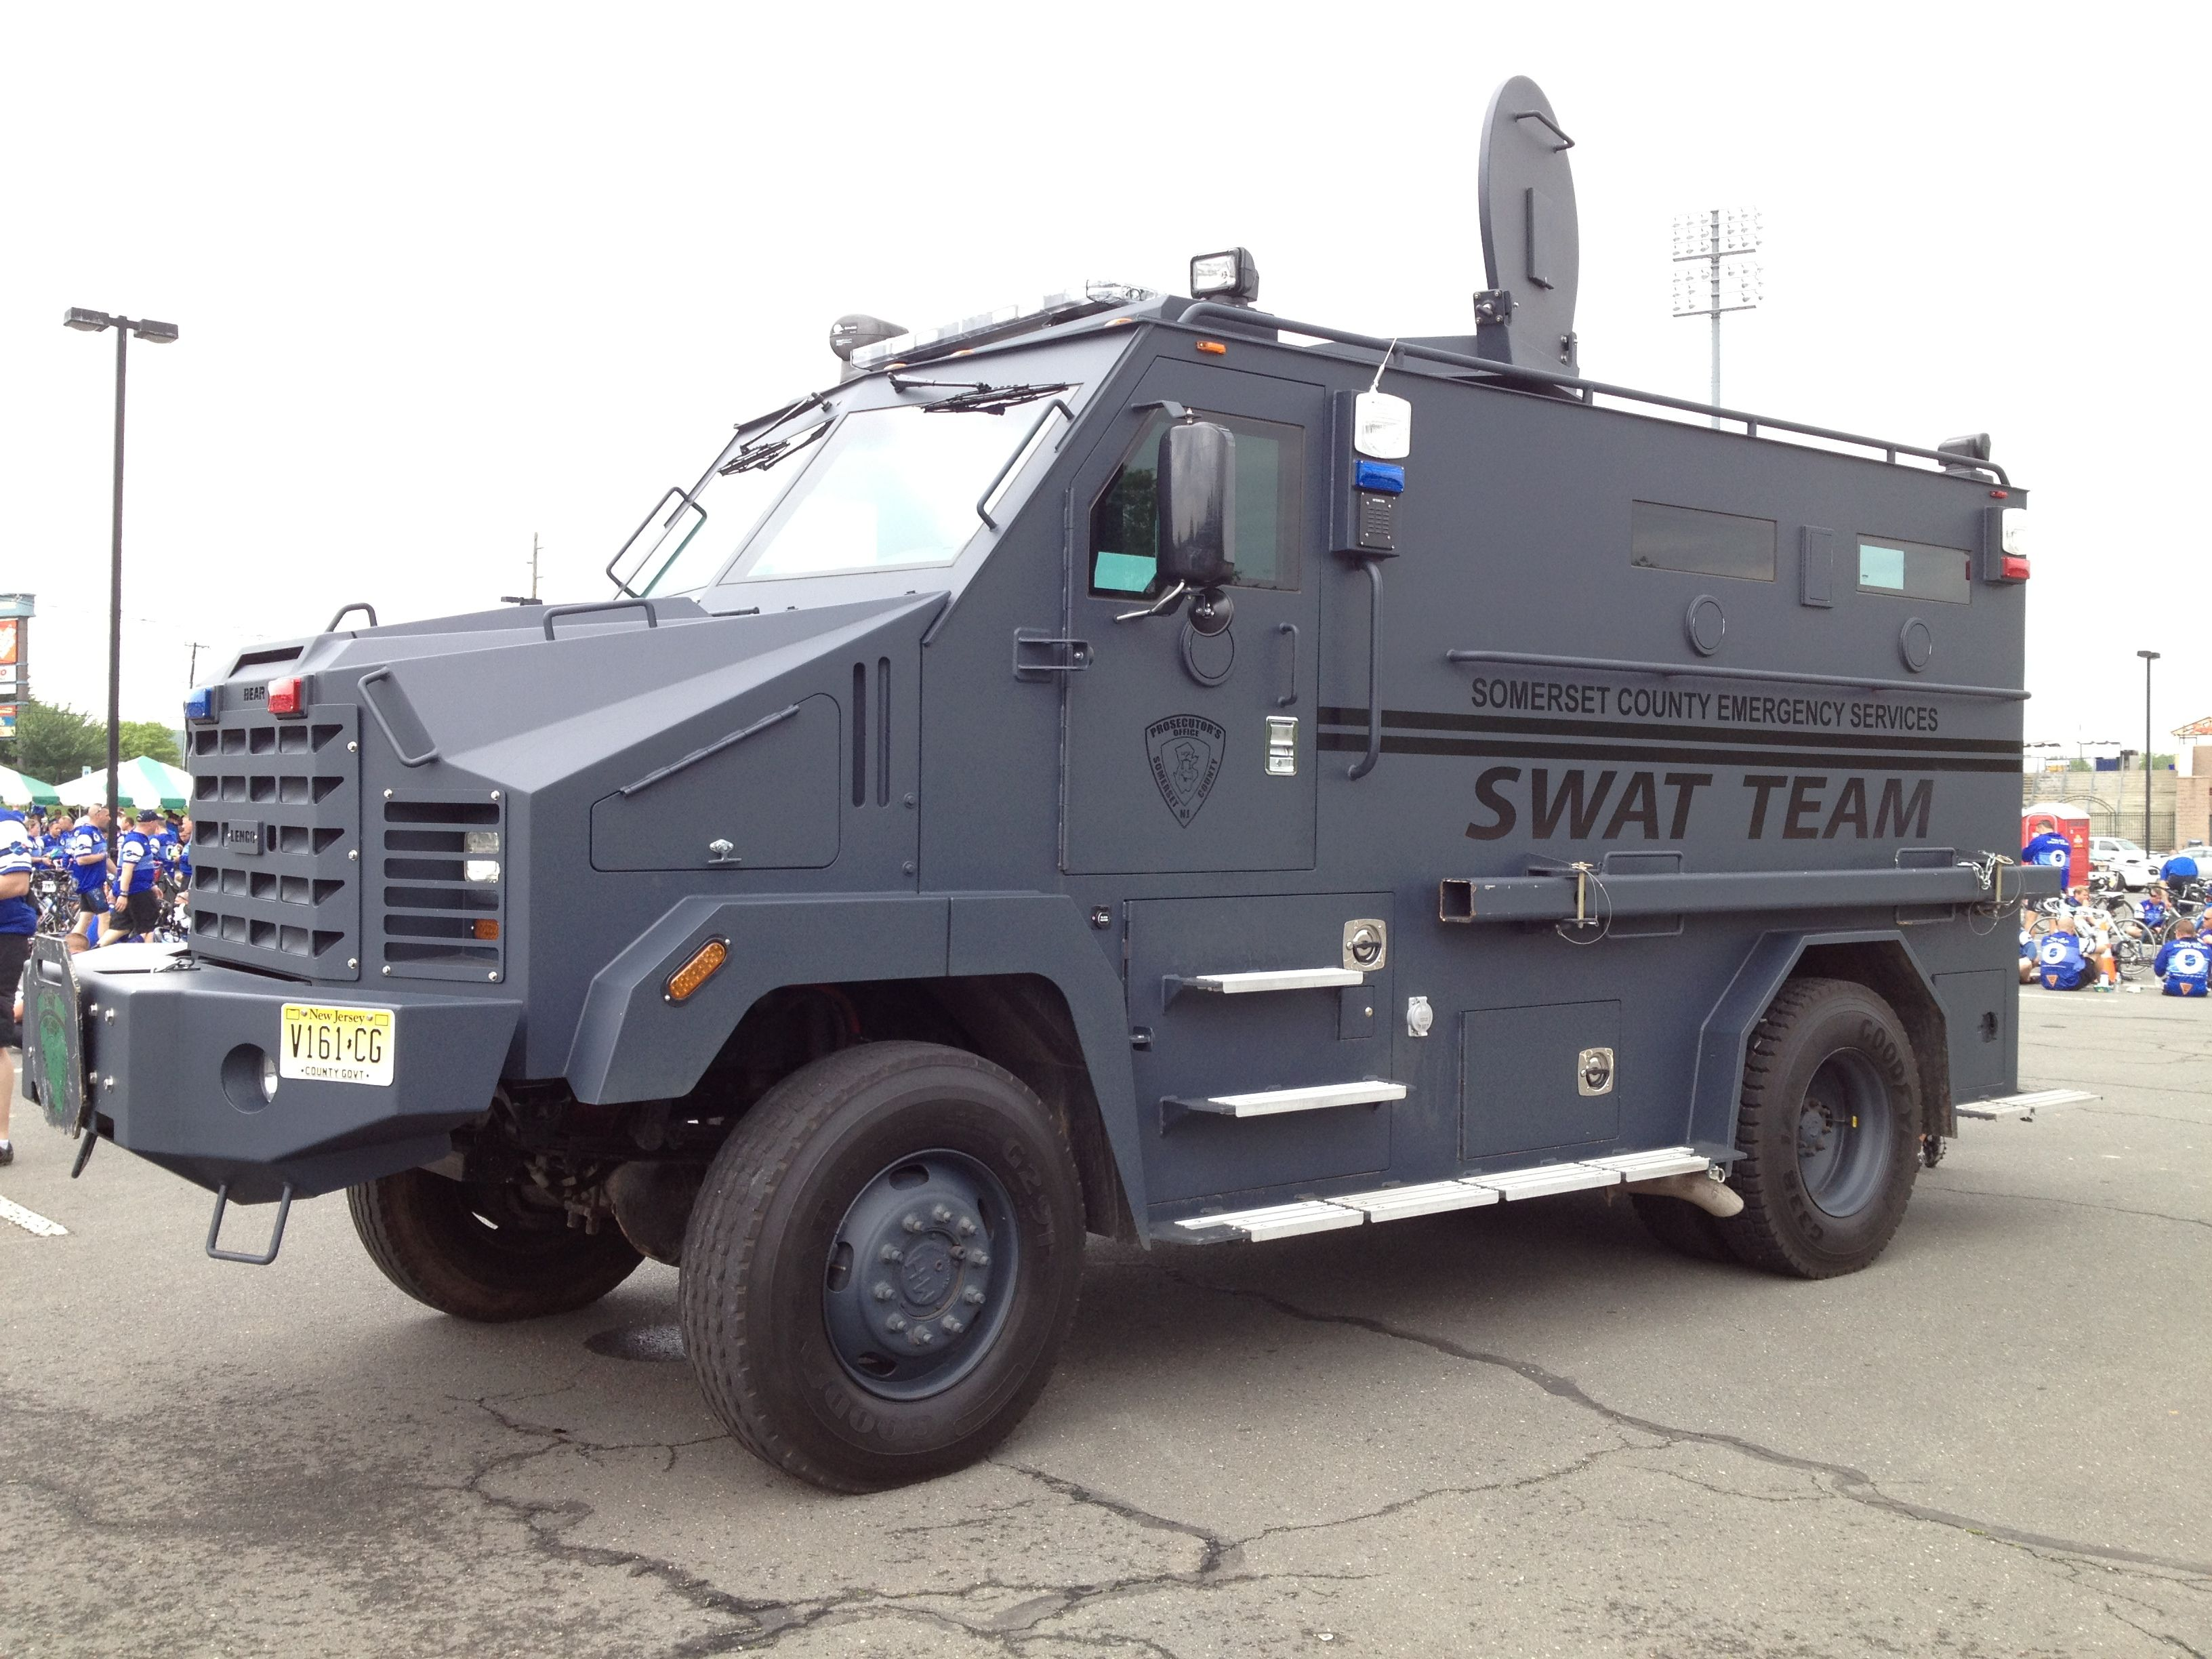 Somerset County Nj Swat Truck Police Truck Armored Truck Emergency Vehicles